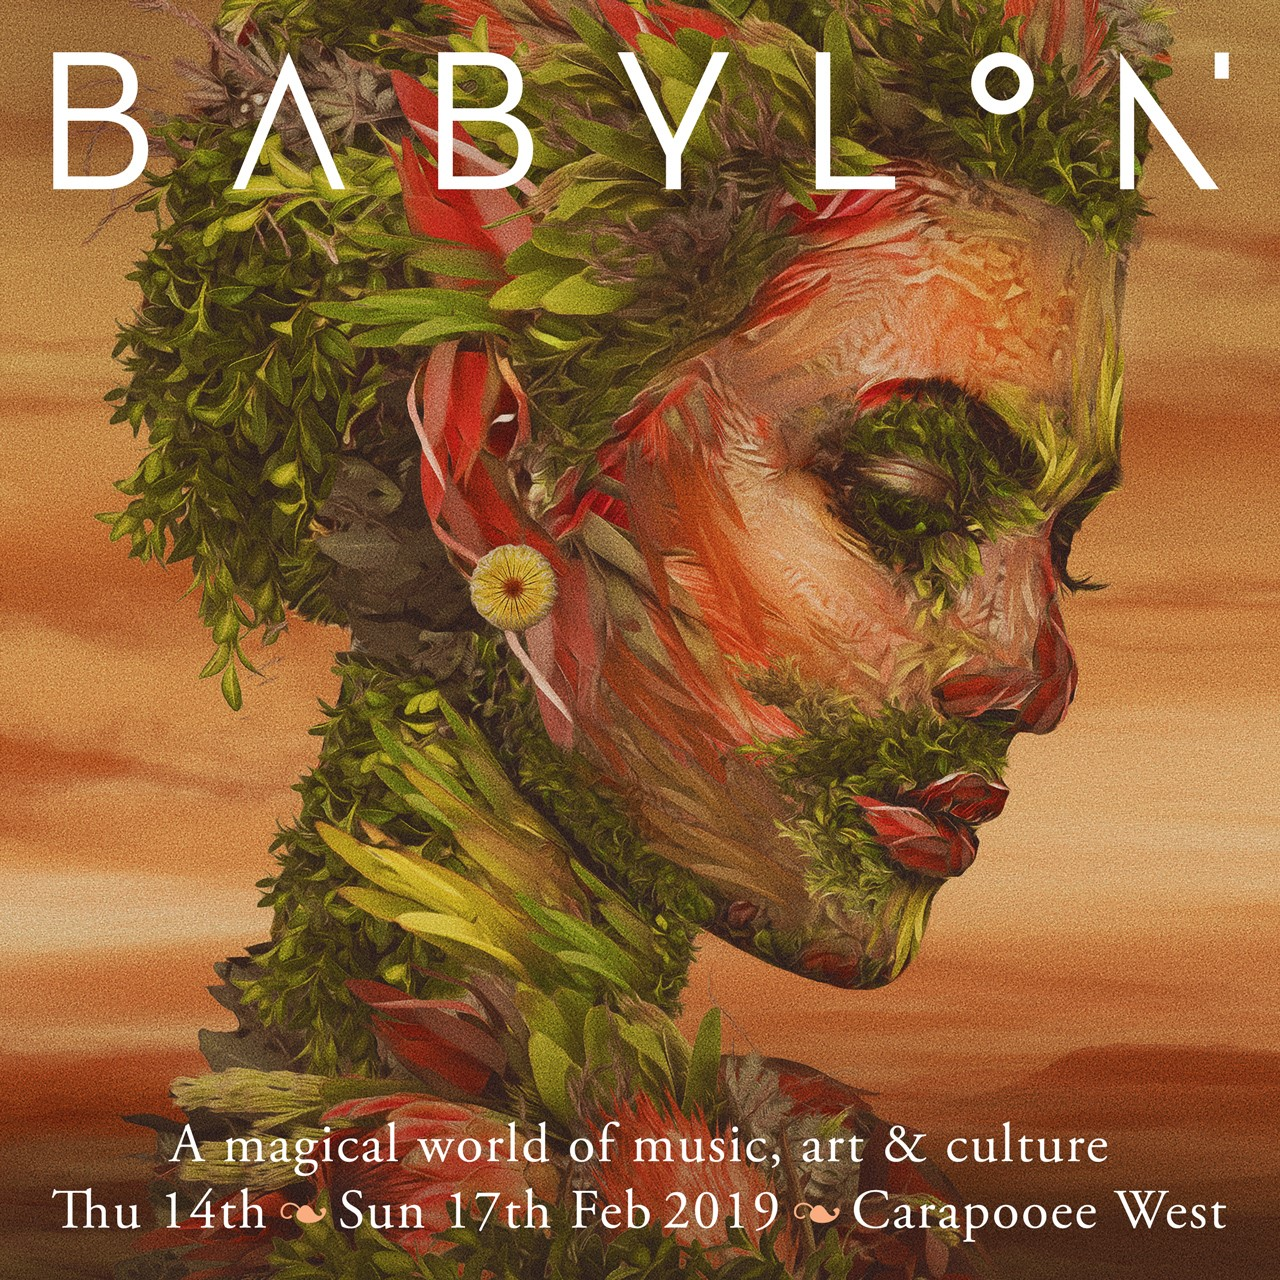 Babylon '19 - A magical world of music, arts & culture